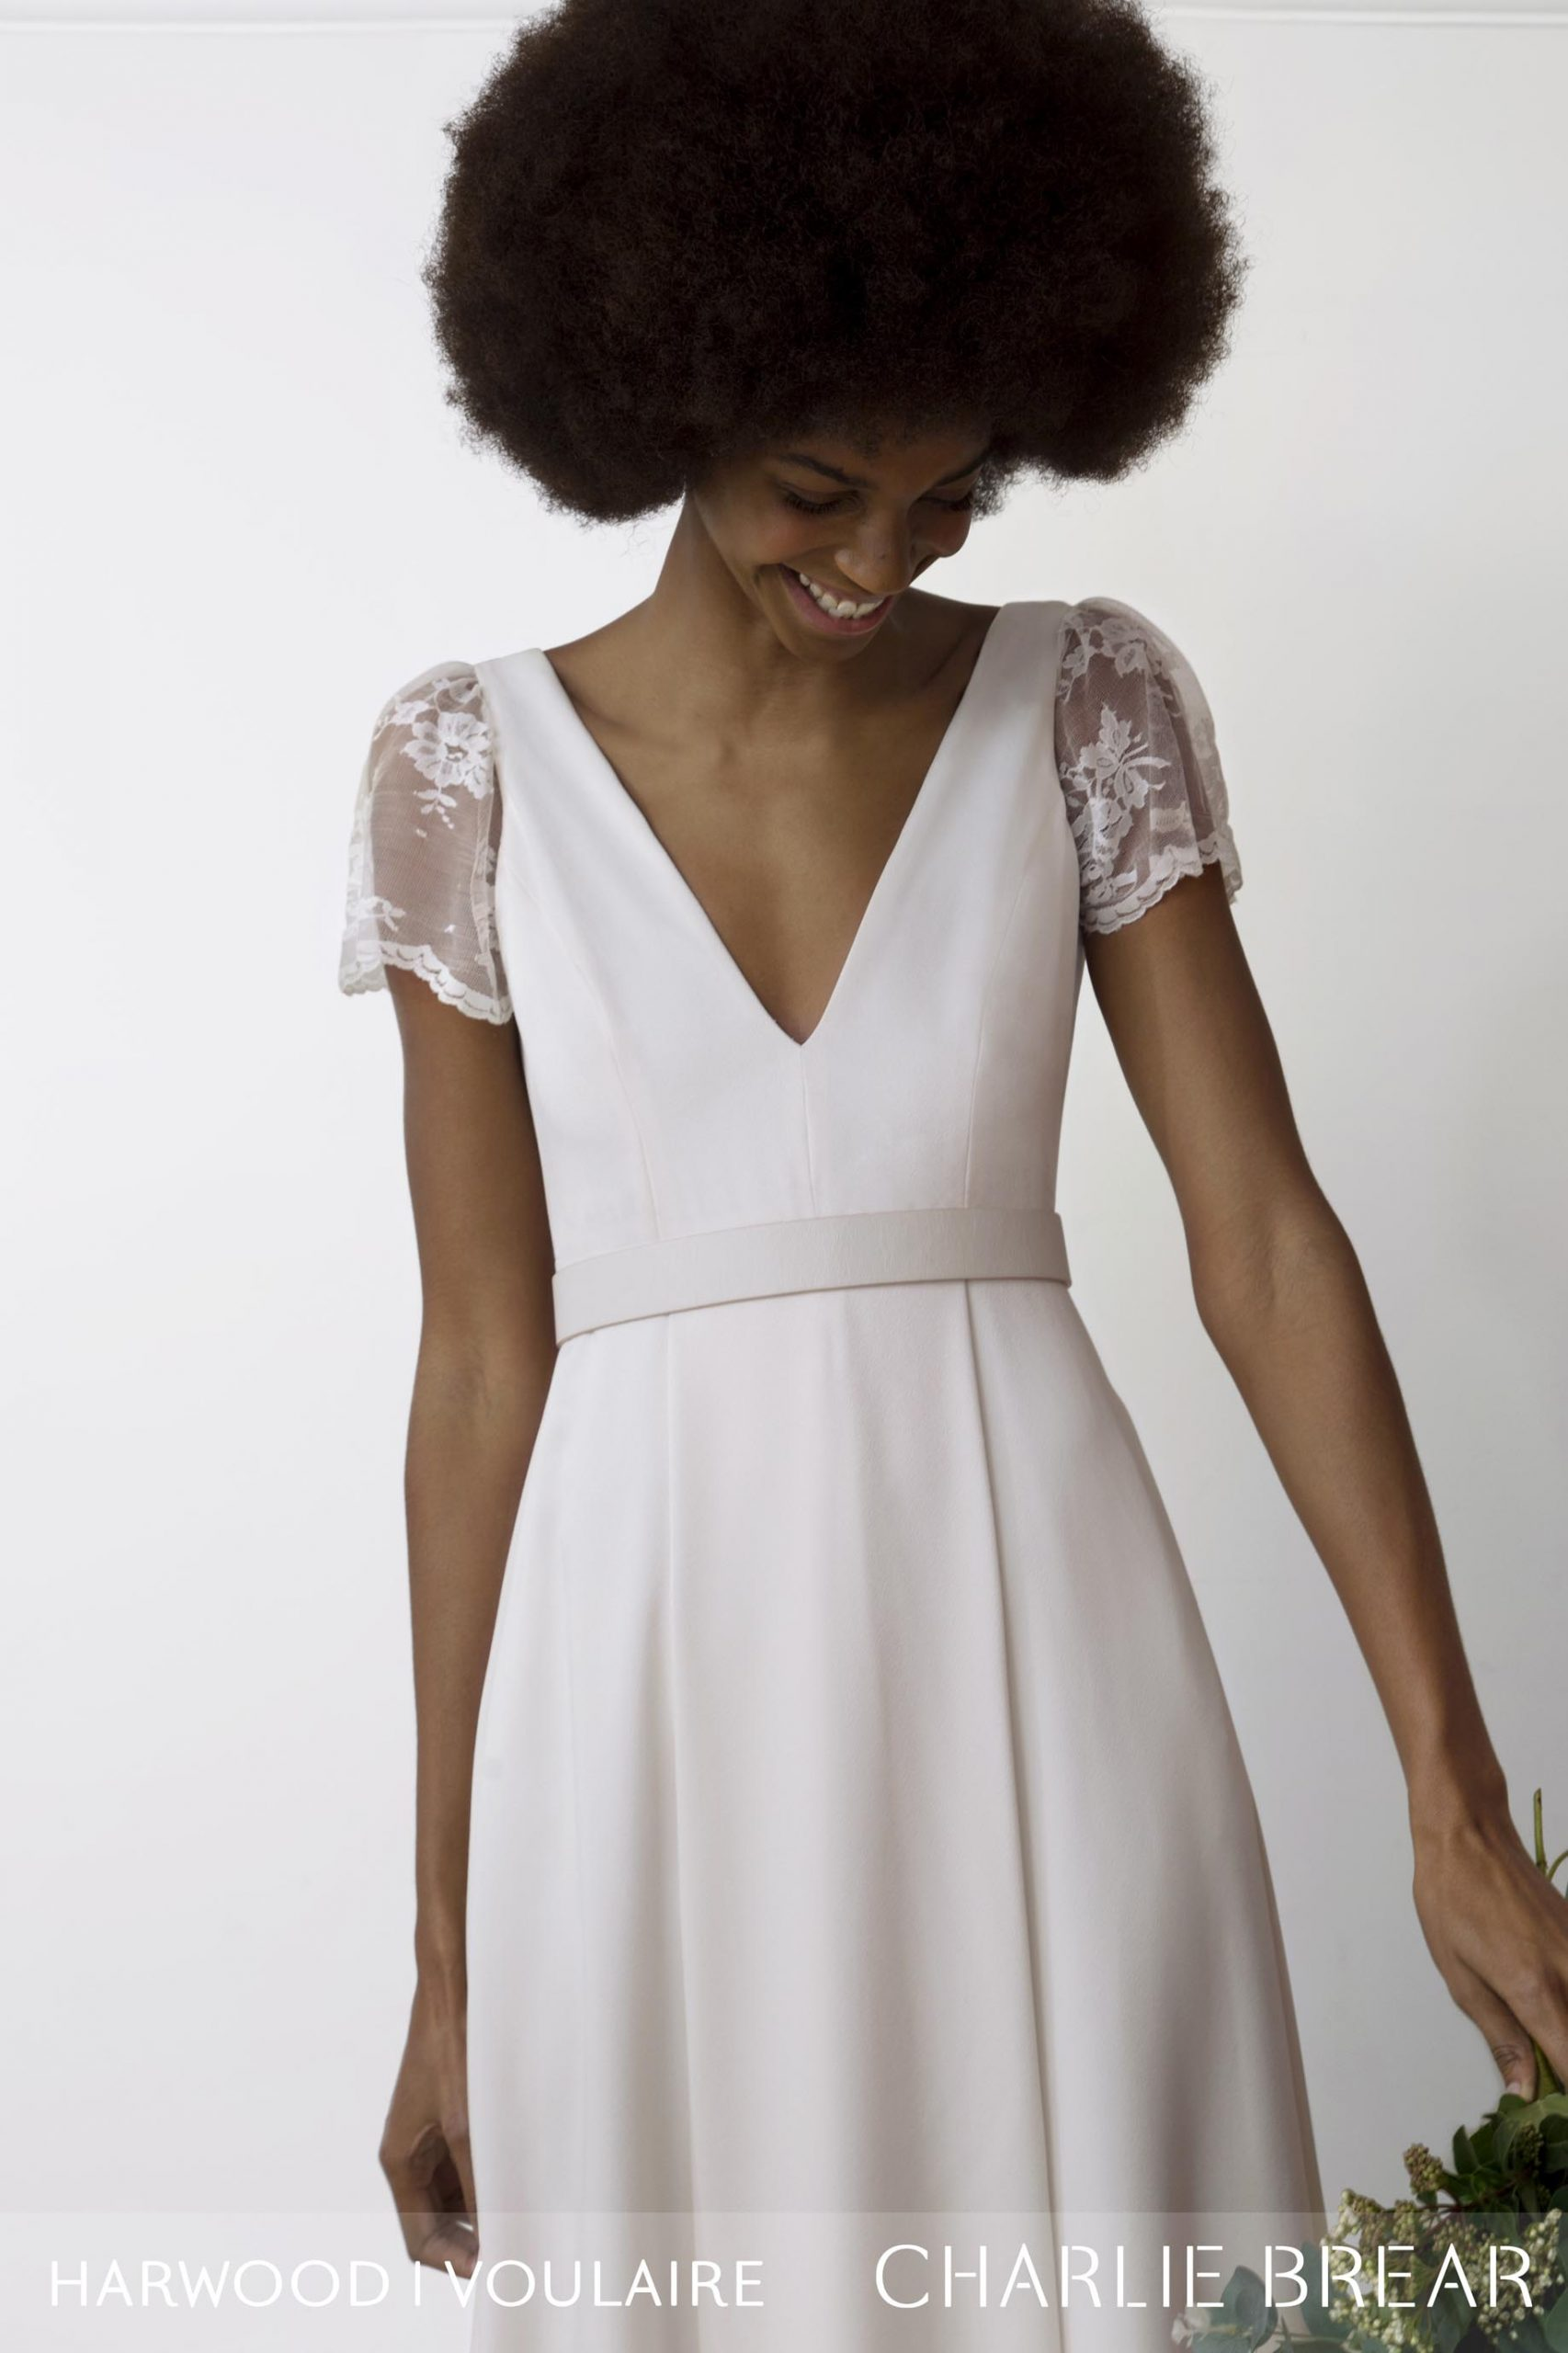 Harwood Dress with Voulaire Sleeves